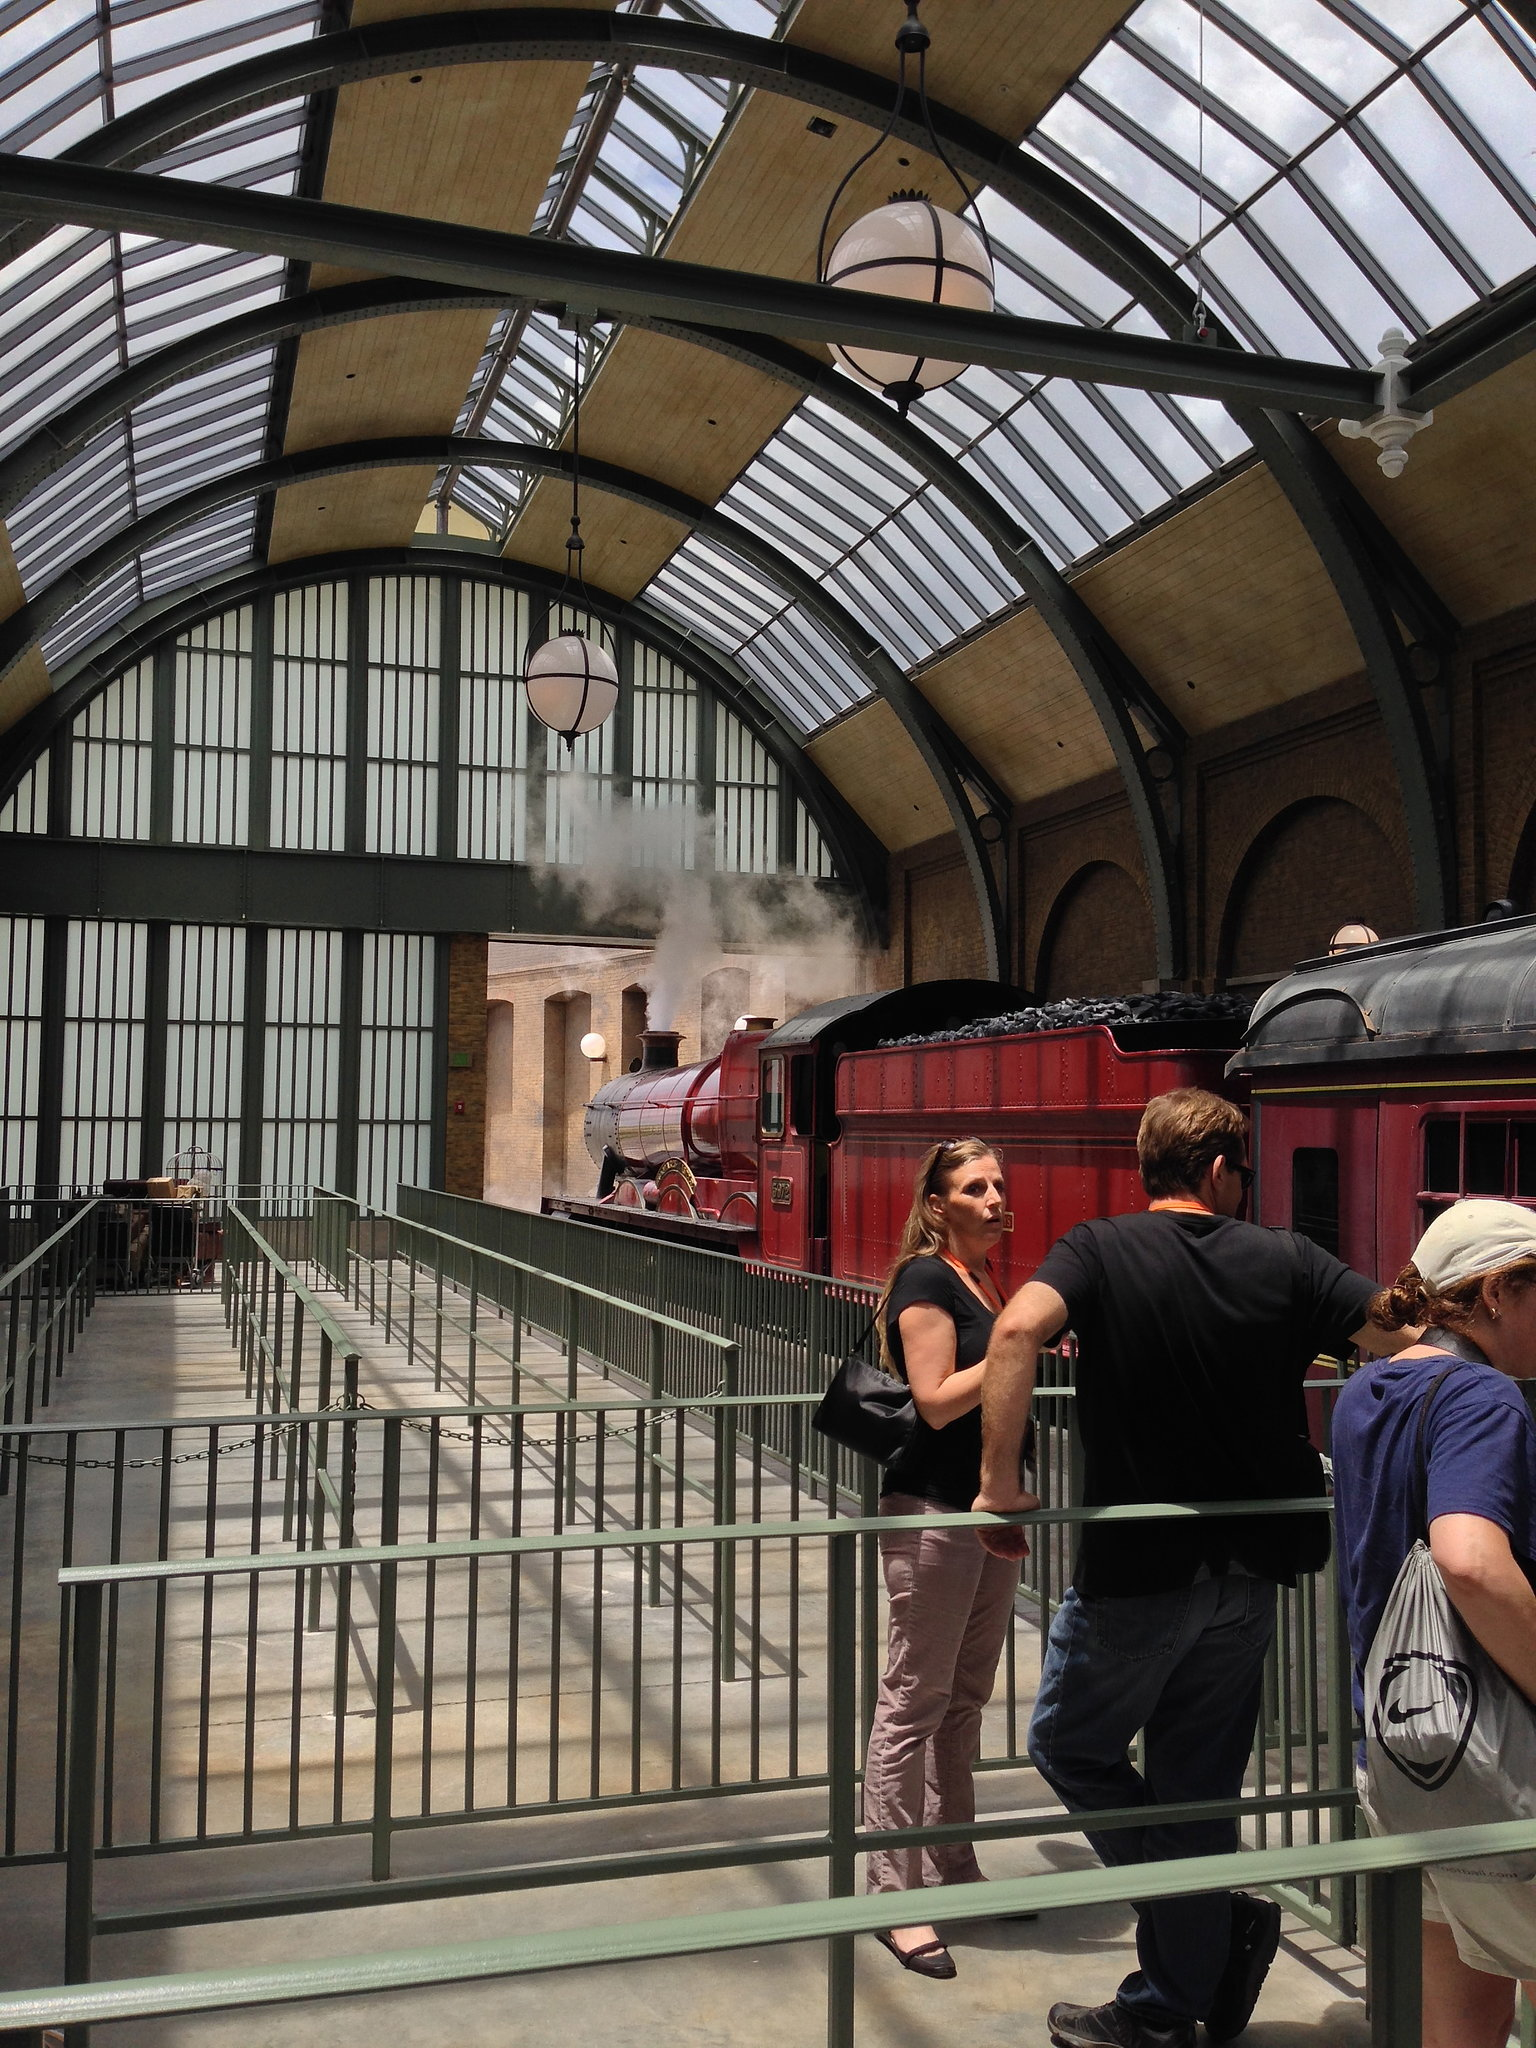 The Hogwarts Express is a real, full-size train that takes you from Dia